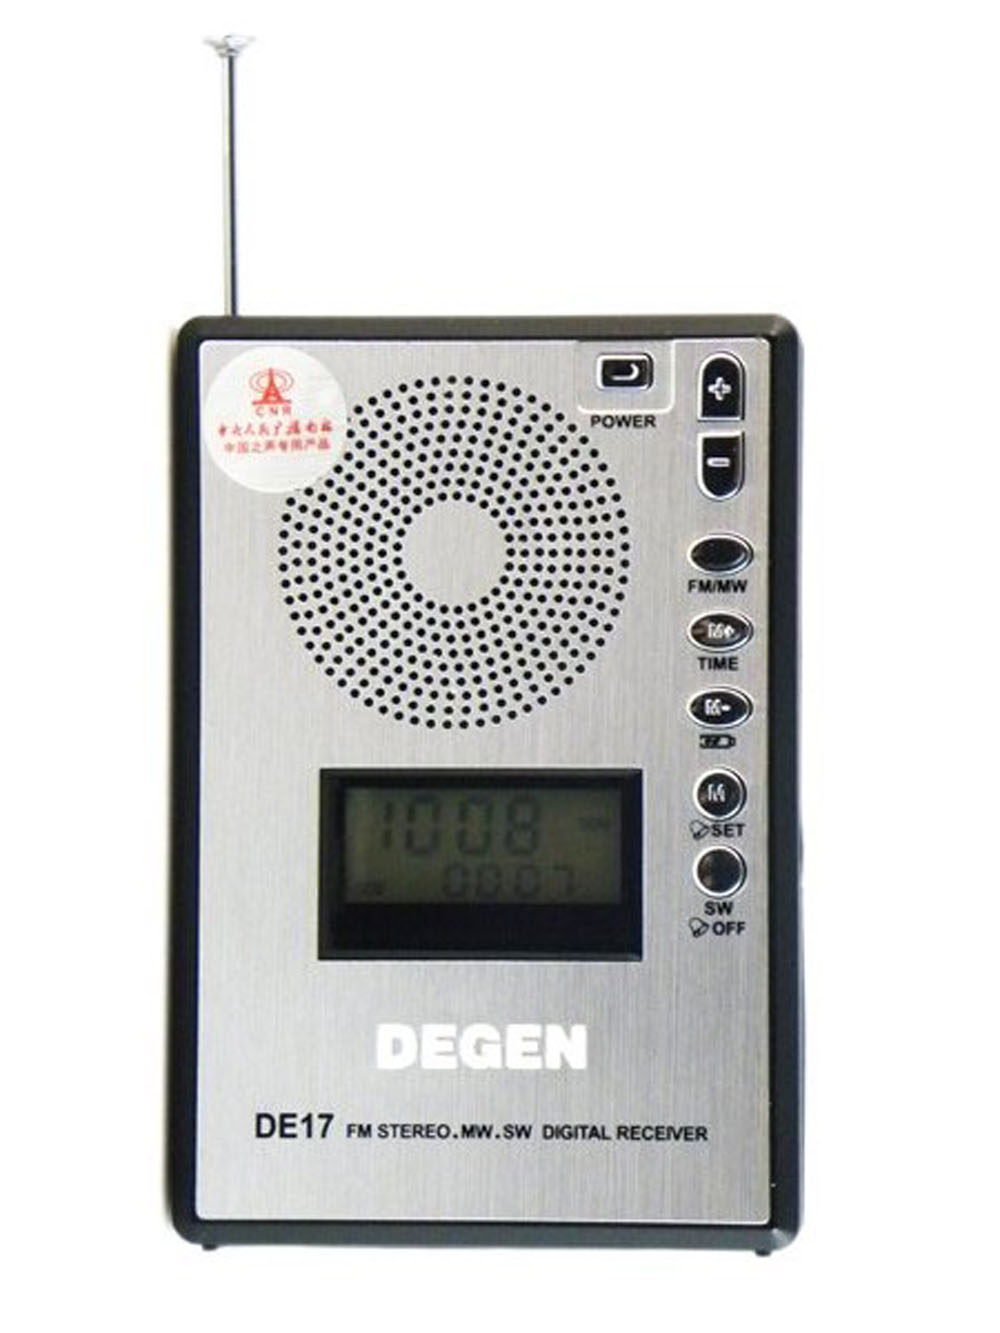 Degen DE17 FM Stereo MW SW LED Radio DSP World Band Receiver ATS Alarm Clock Radio Telescopic Antenna Lock Key / Reset A0904A 5pcs pocket radio 9k portable dsp fm mw sw receiver emergency radio digital alarm clock automatic search radio station y4408